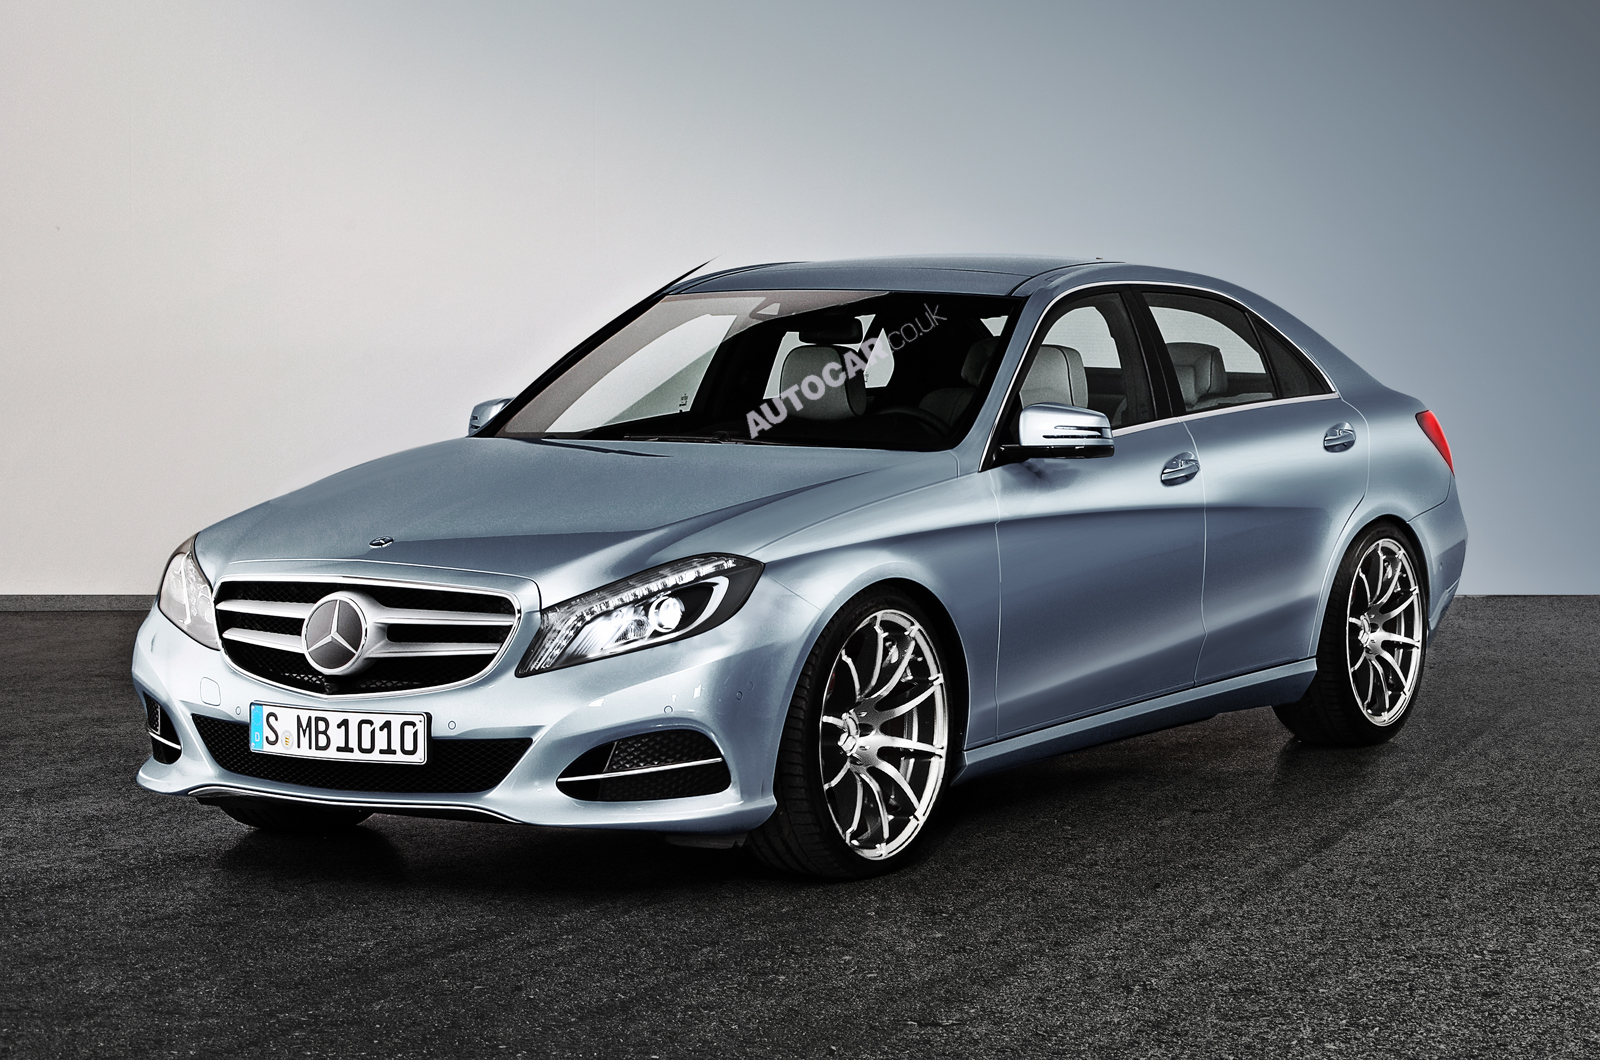 New C Class Specs Of New Mercedes Benz C Class Disclosed Benzinsider